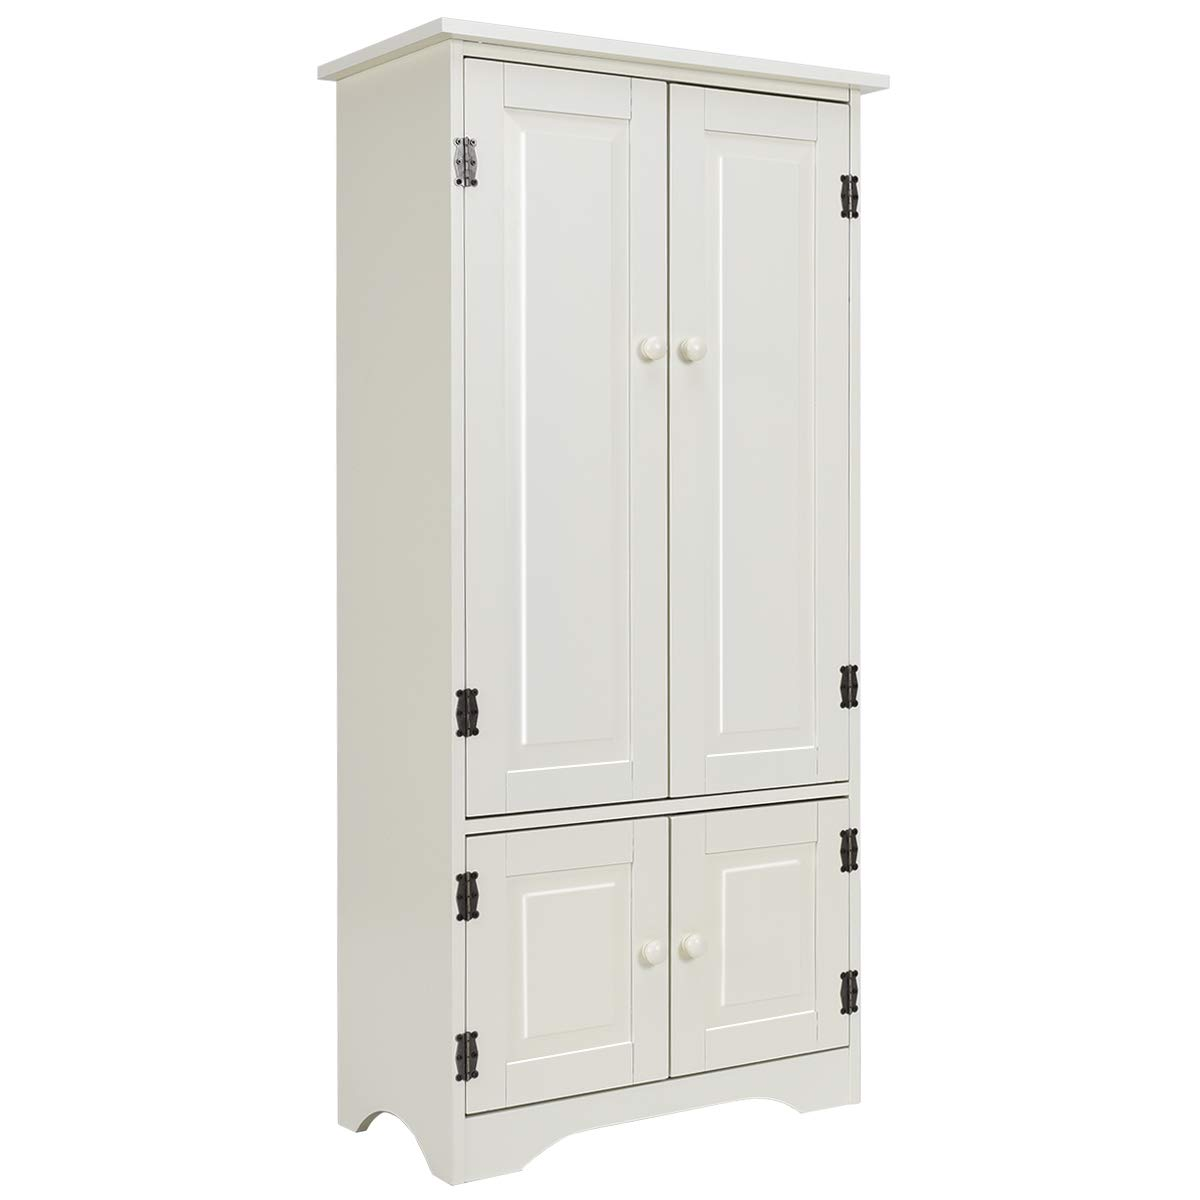 "Giantex Accent Floor Storage Cabinet Adjustable Shelves Antique 2-Door Low Floor Cabinet 24"" Lx13 Wx49''H (White)"